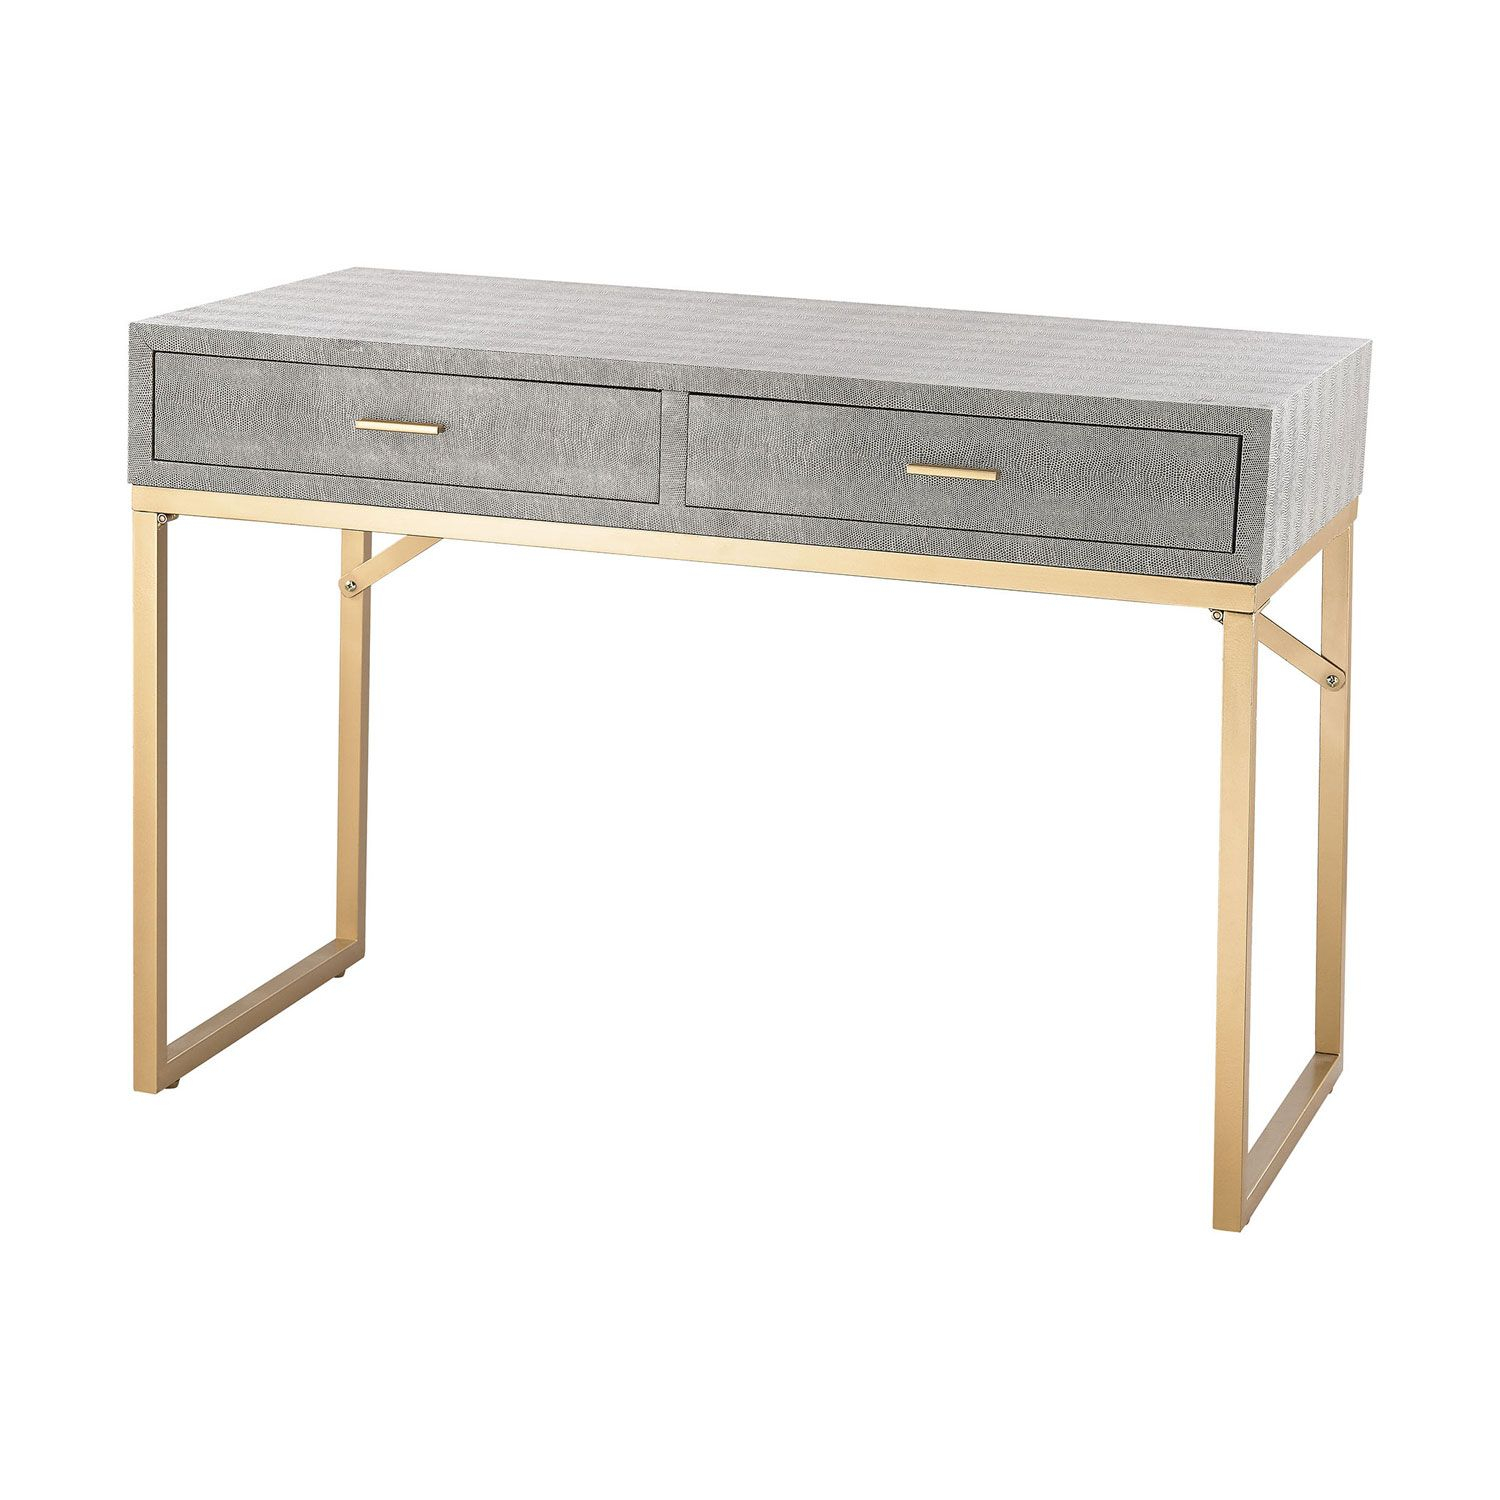 Sterling Industries Beaufort Gold Grey Desk | Orc Office | Desk inside Mix Agate Metal Frame Console Tables (Image 29 of 30)